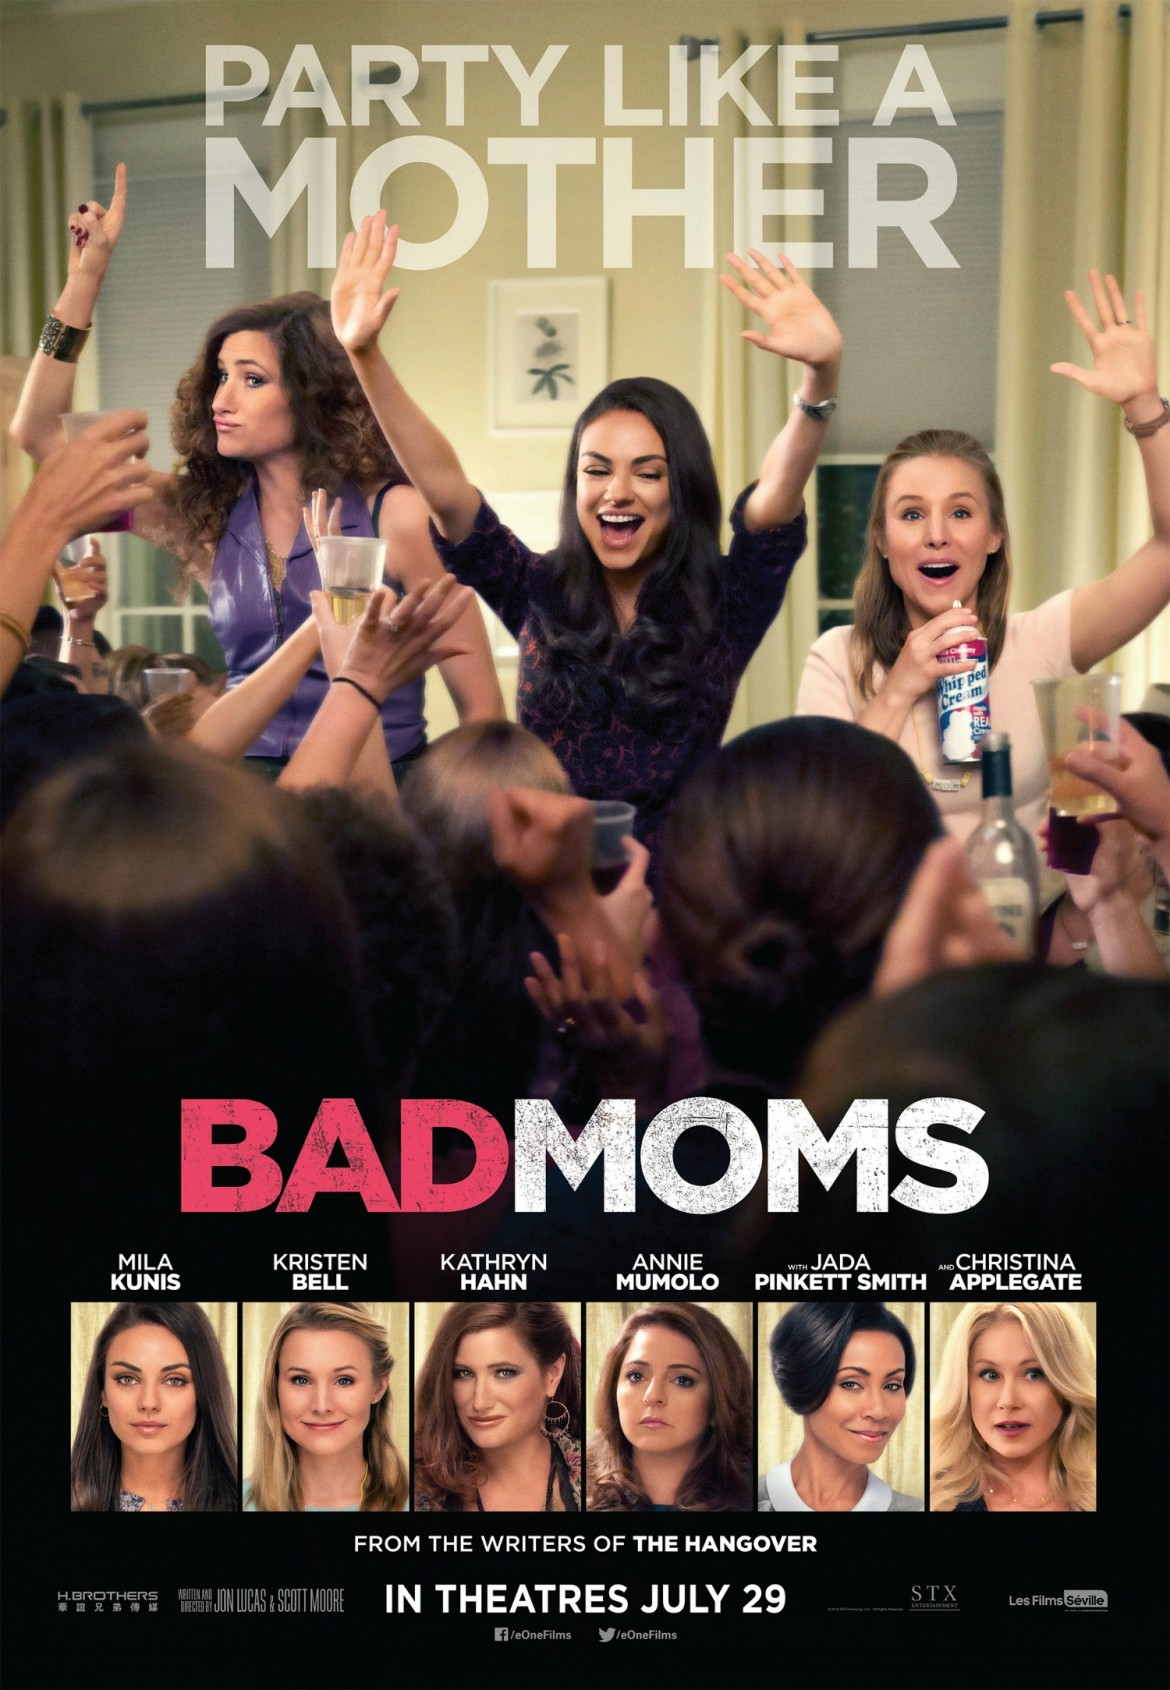 Bad Moms Affiche 27x39 ENG HR no marks